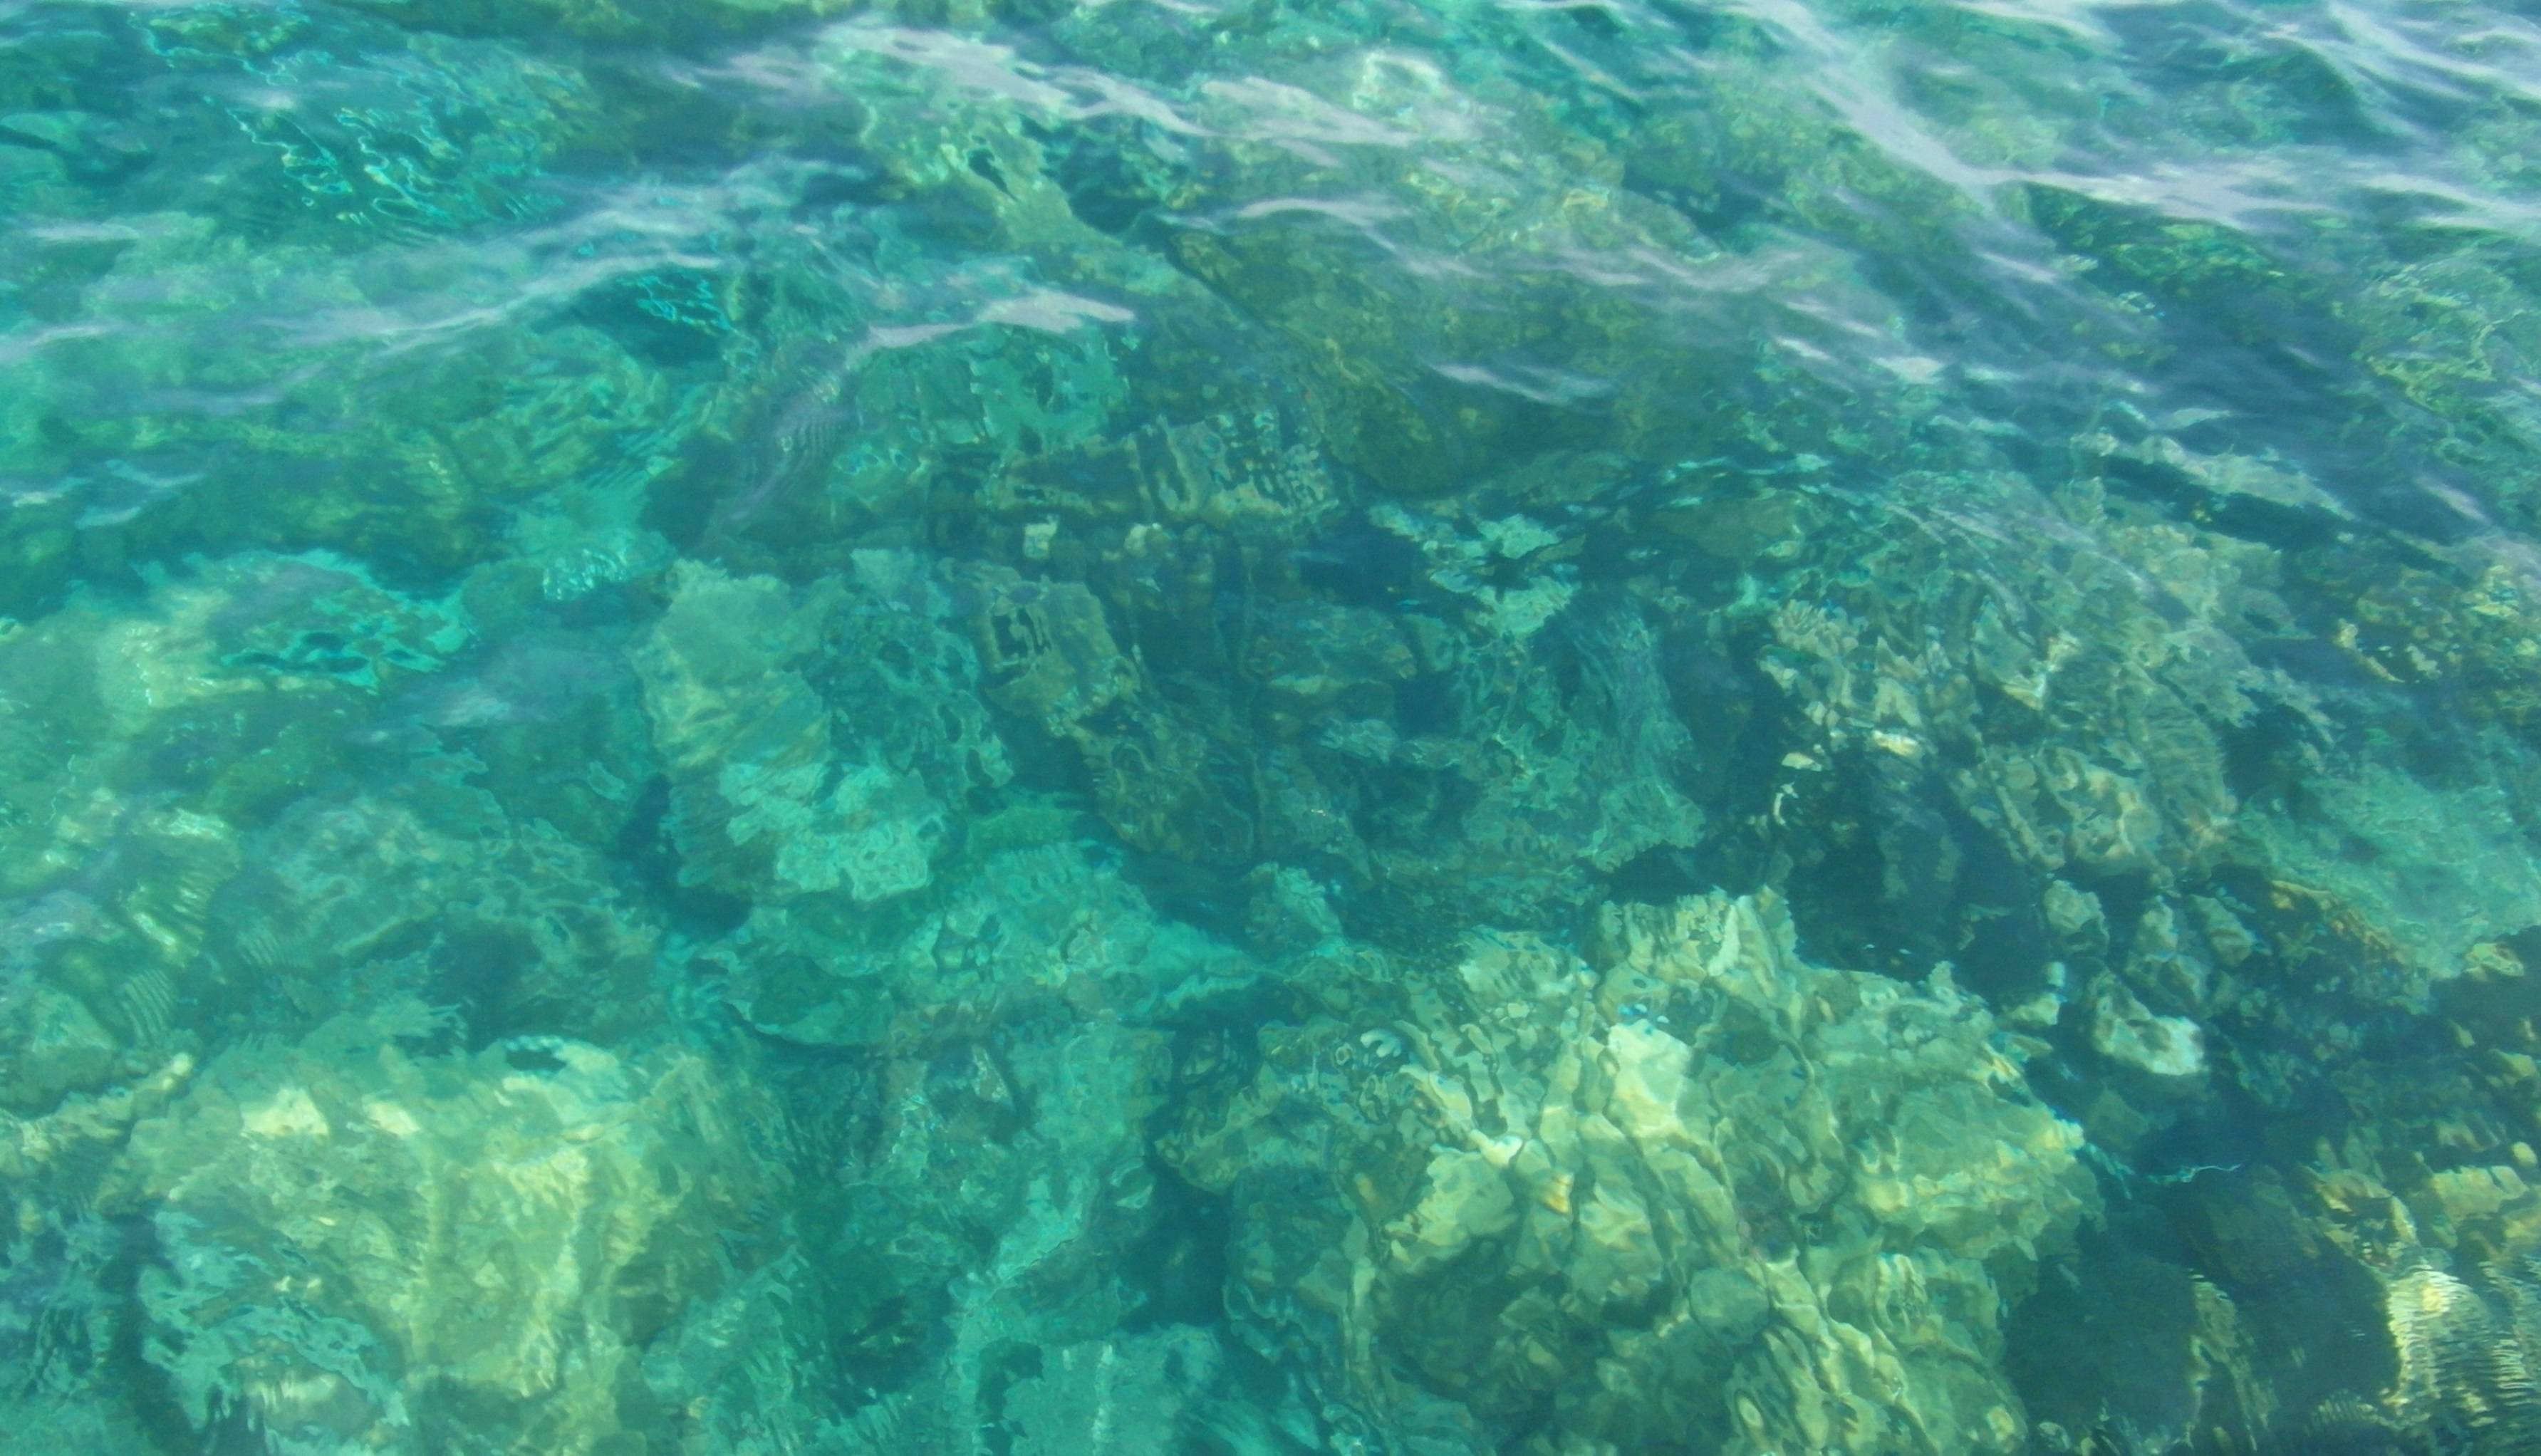 Clear Ocean Coral Background, Marine, Water, Turquoise, Tropical, HQ Photo